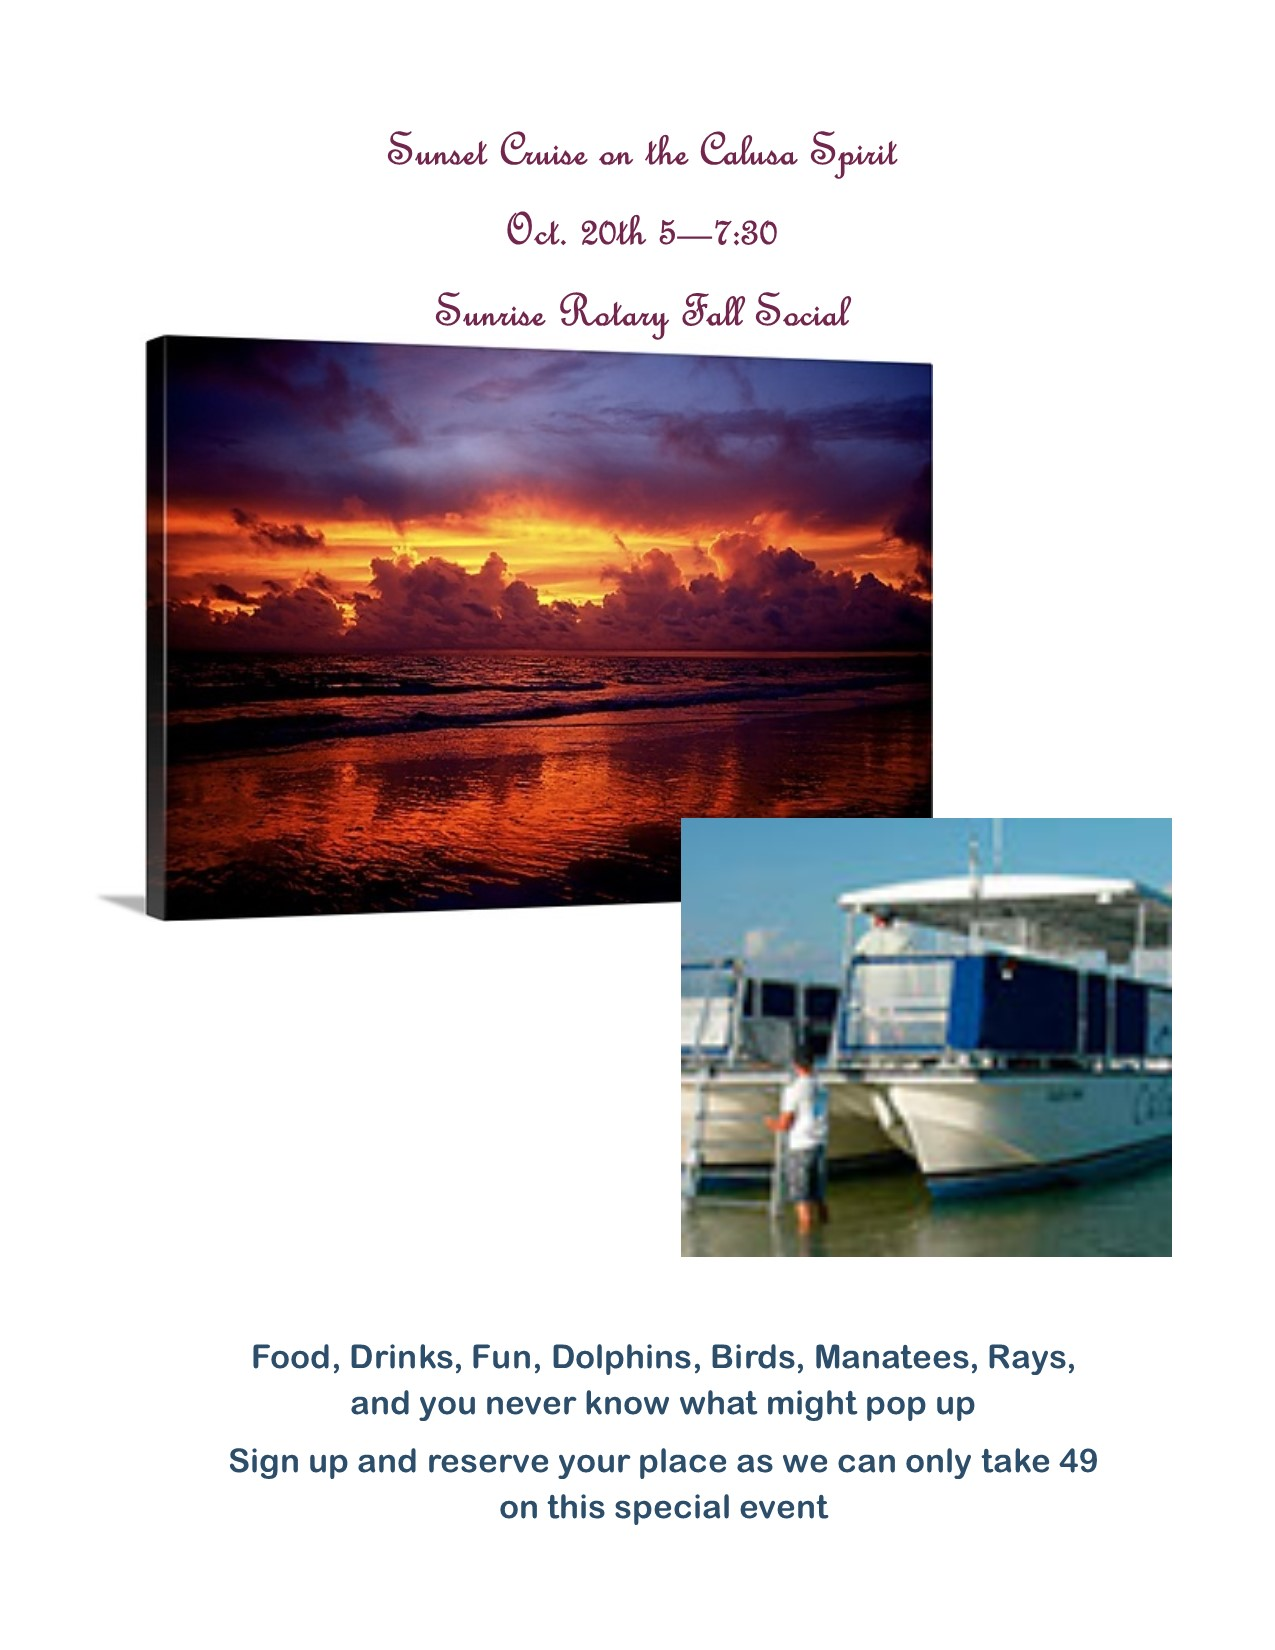 Sunrise Rotary Fall Social Calusa Spirit Sunset Cruise